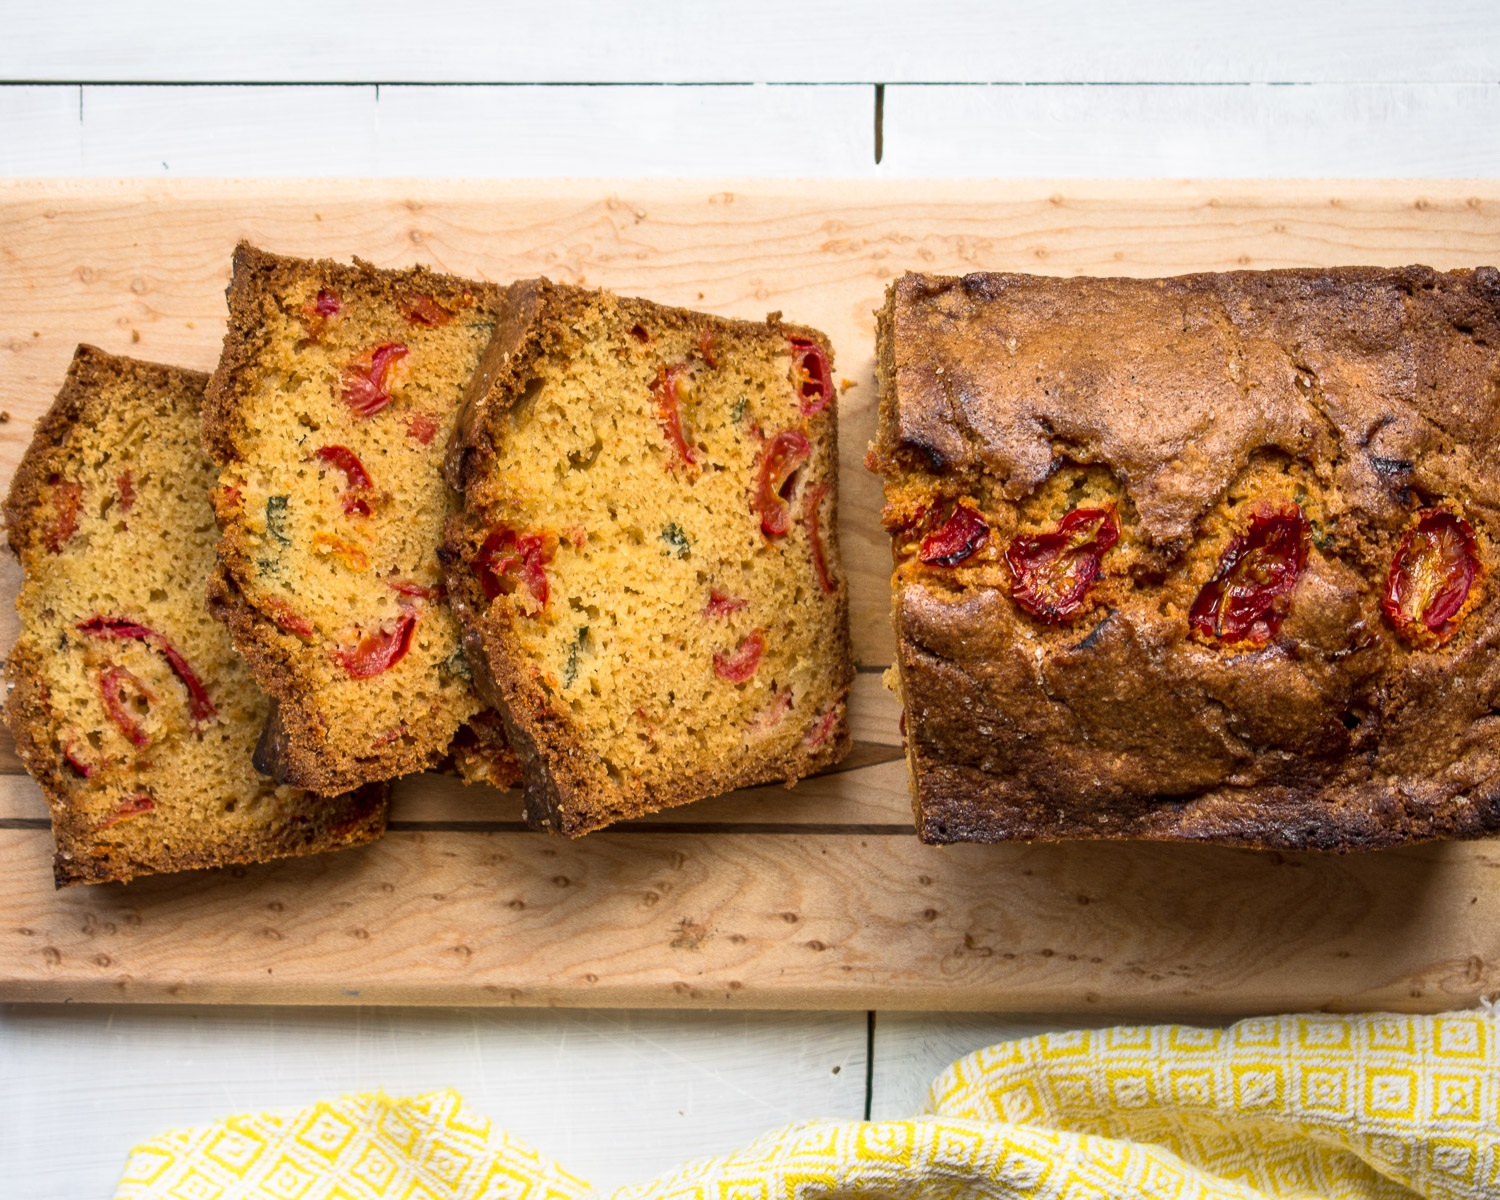 Roasted tomatoes and fresh basil make this a colorful quick bread.